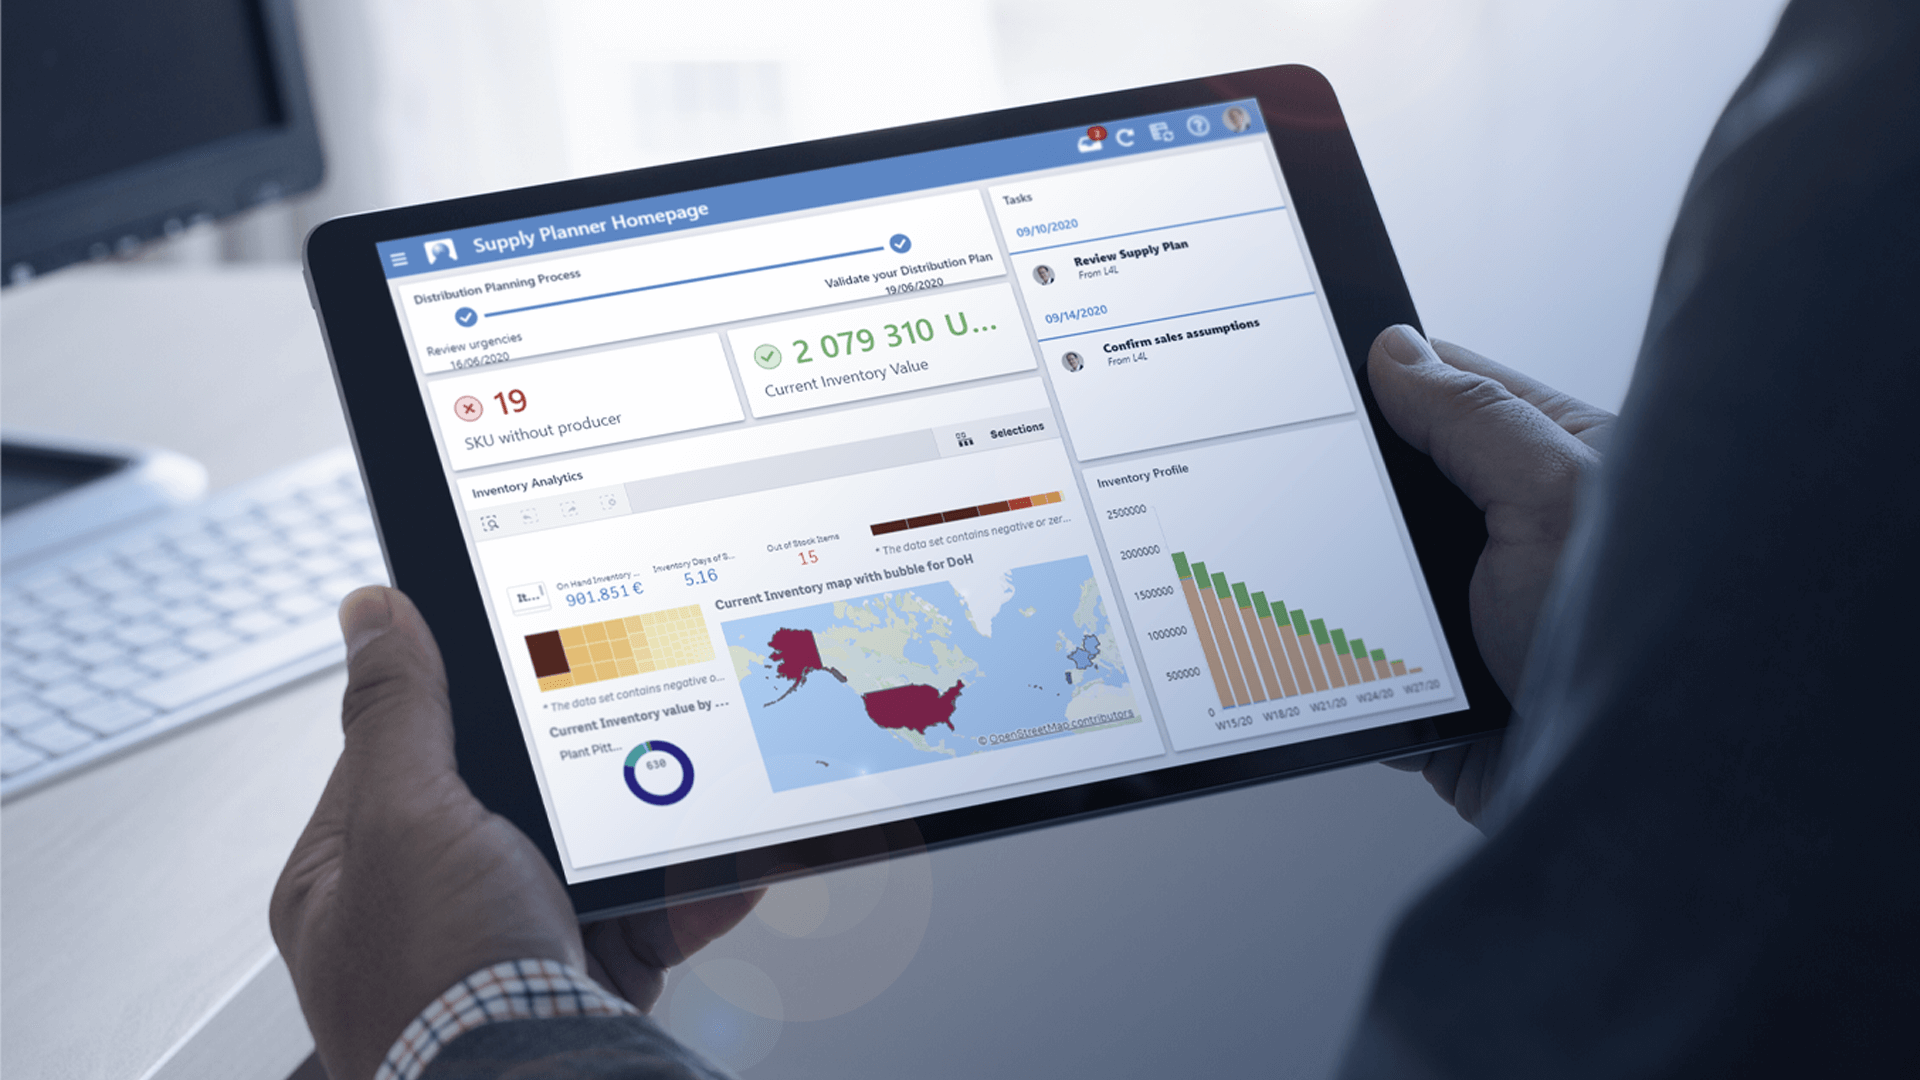 QAD DynaSys Cloud DSCP Software - Digital Supply Chain Planning Dashboard and UX